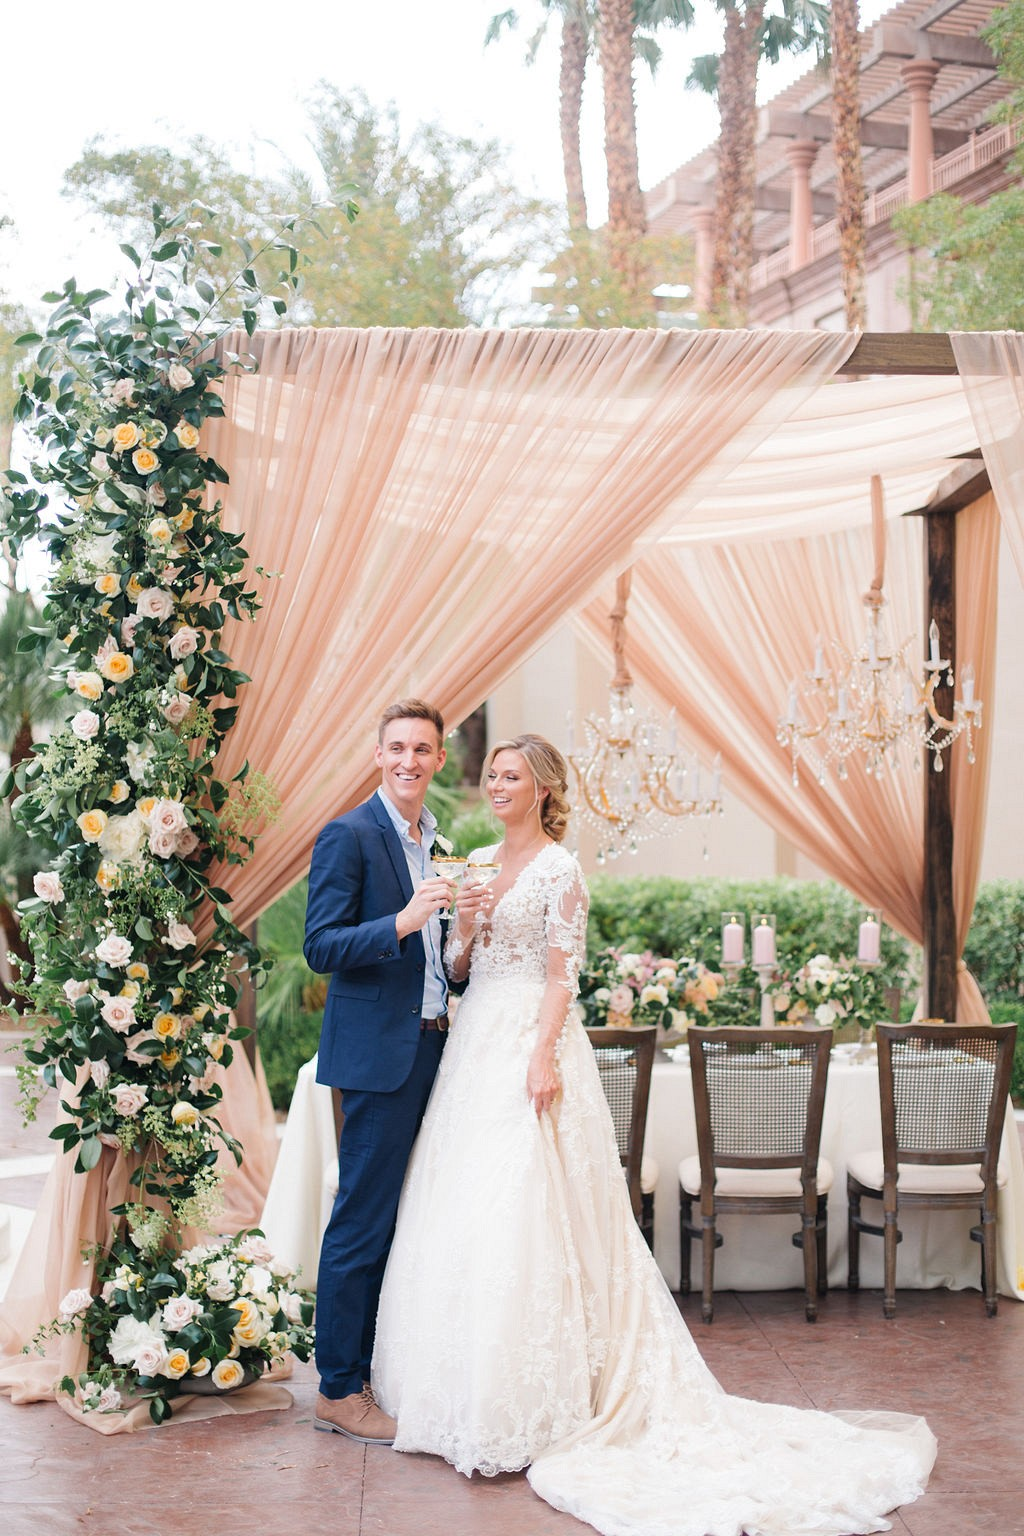 Four Seasons Wedding with Chandeliers and garden florals